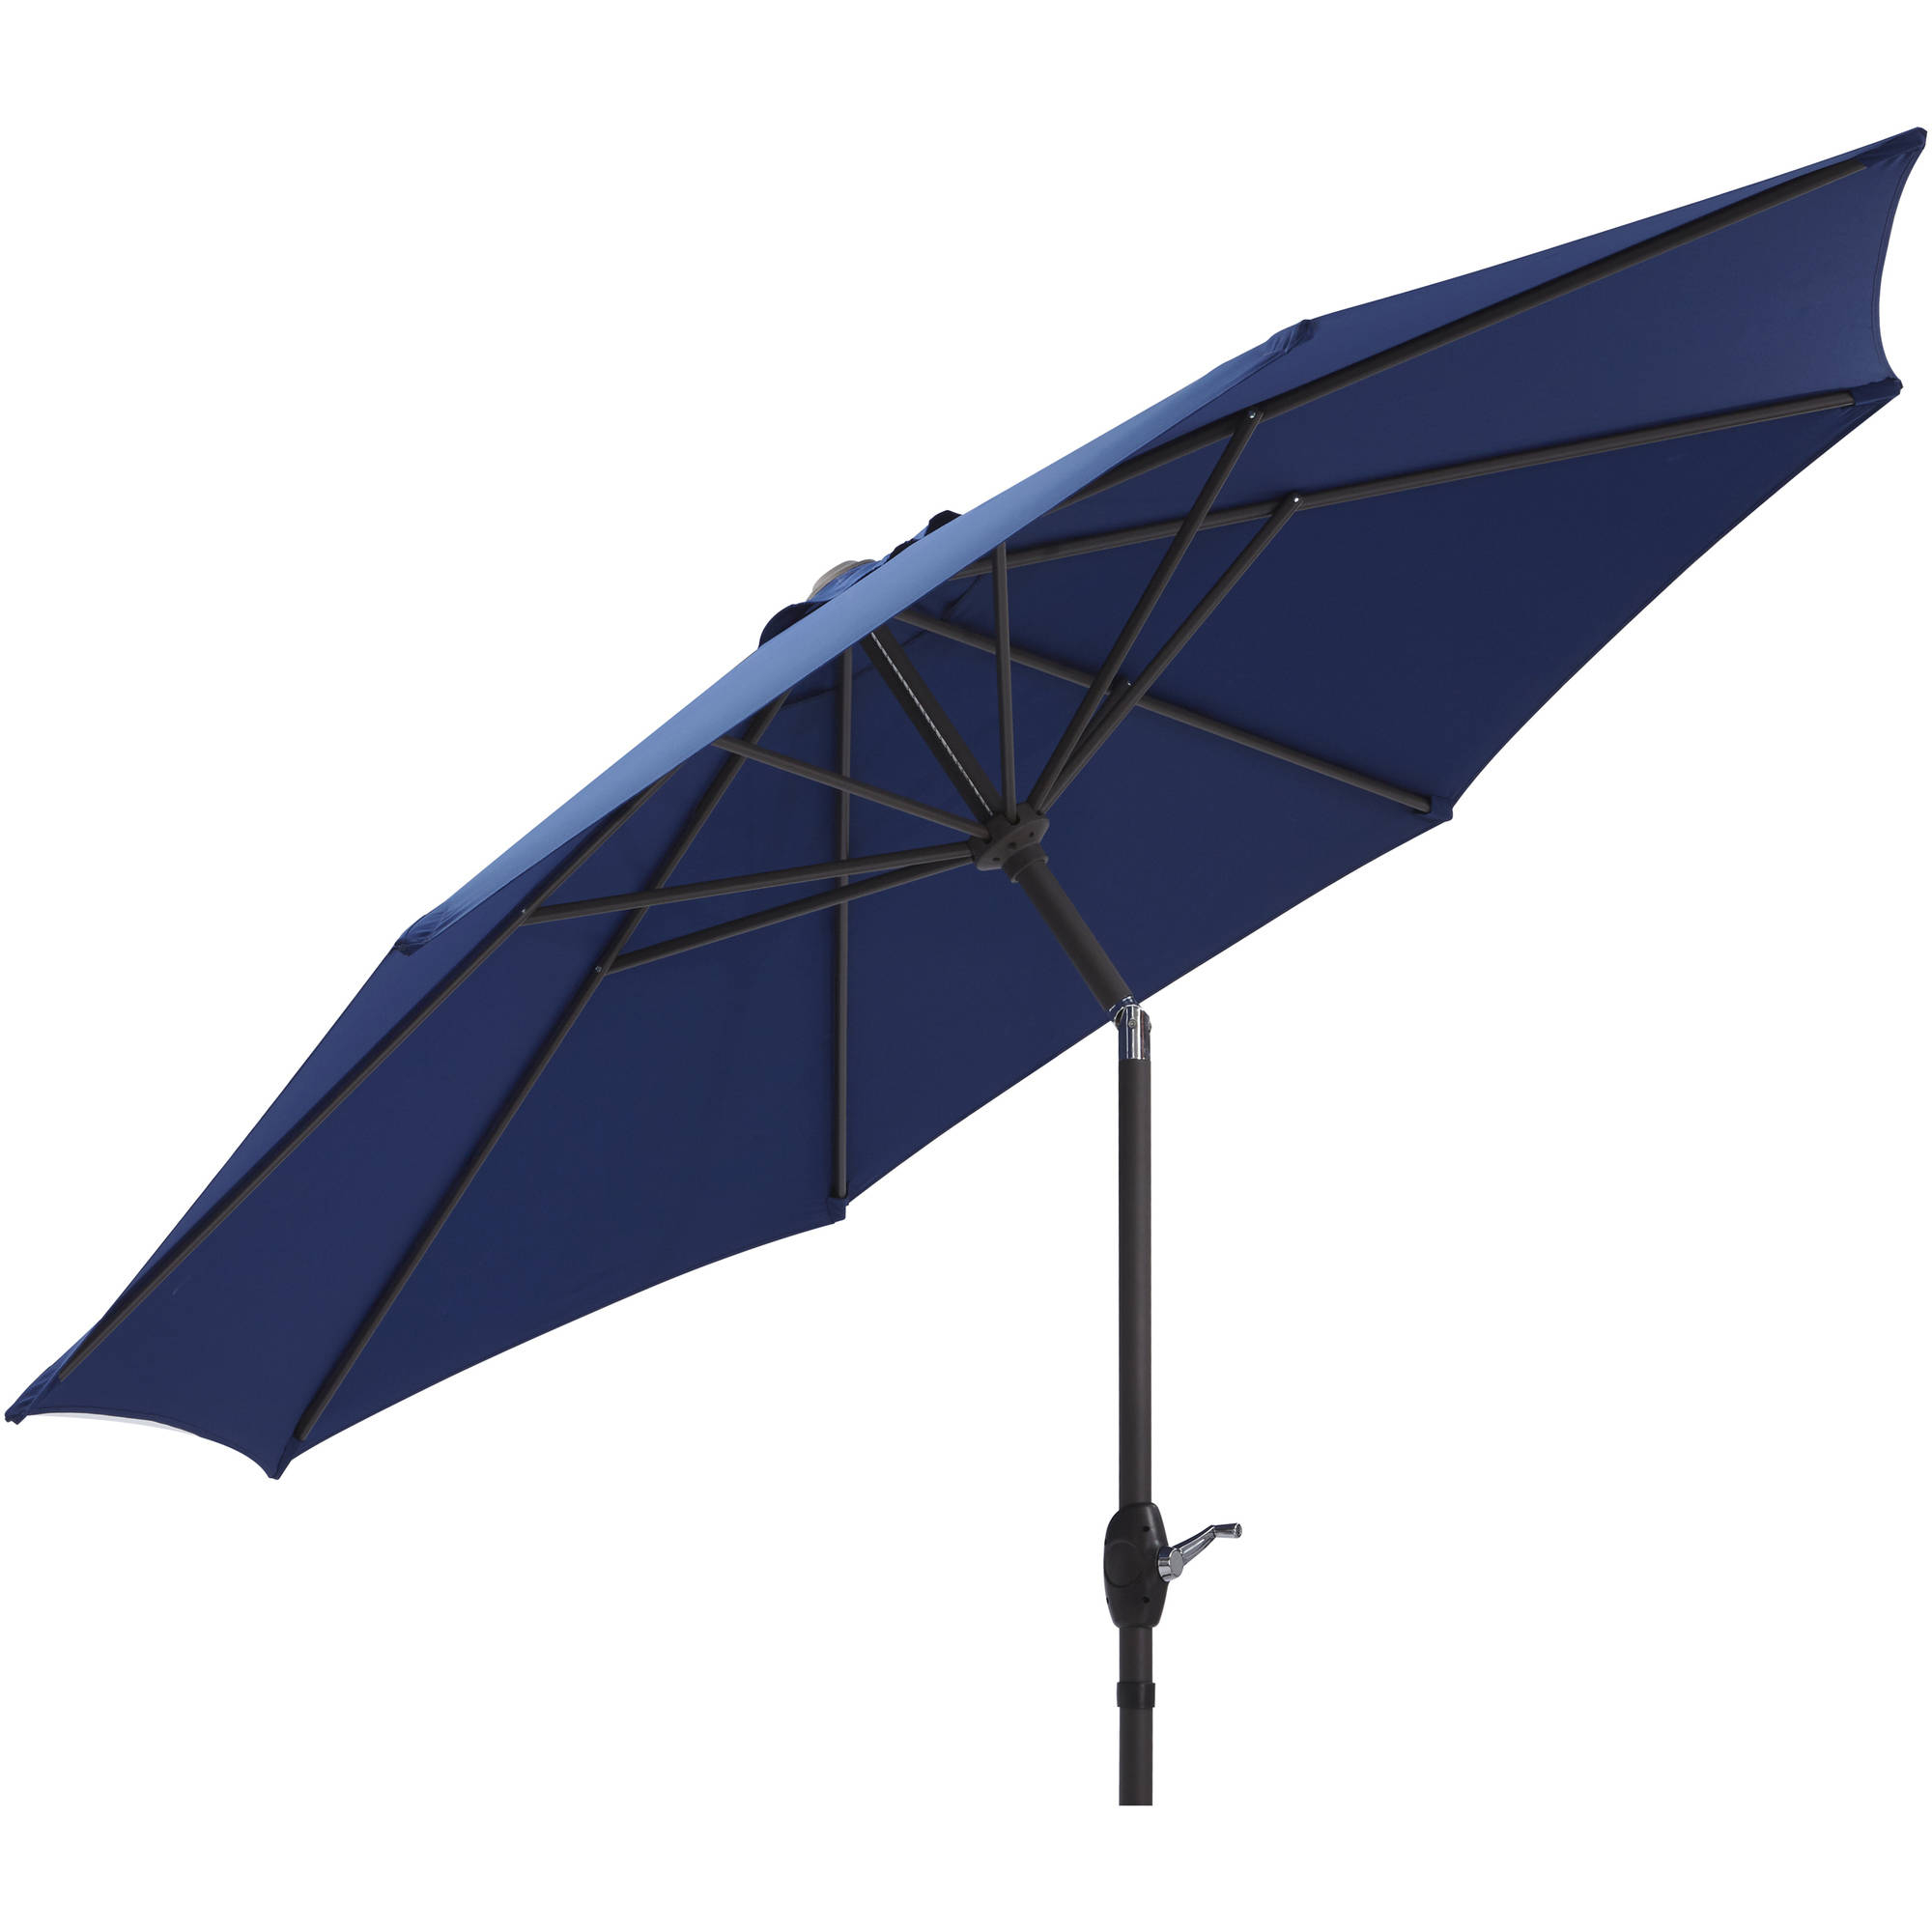 New Haven Market Umbrellas With Regard To 2020 Mainstays 9' Market Umbrella, Navy Blue With Brown Frame (View 15 of 20)